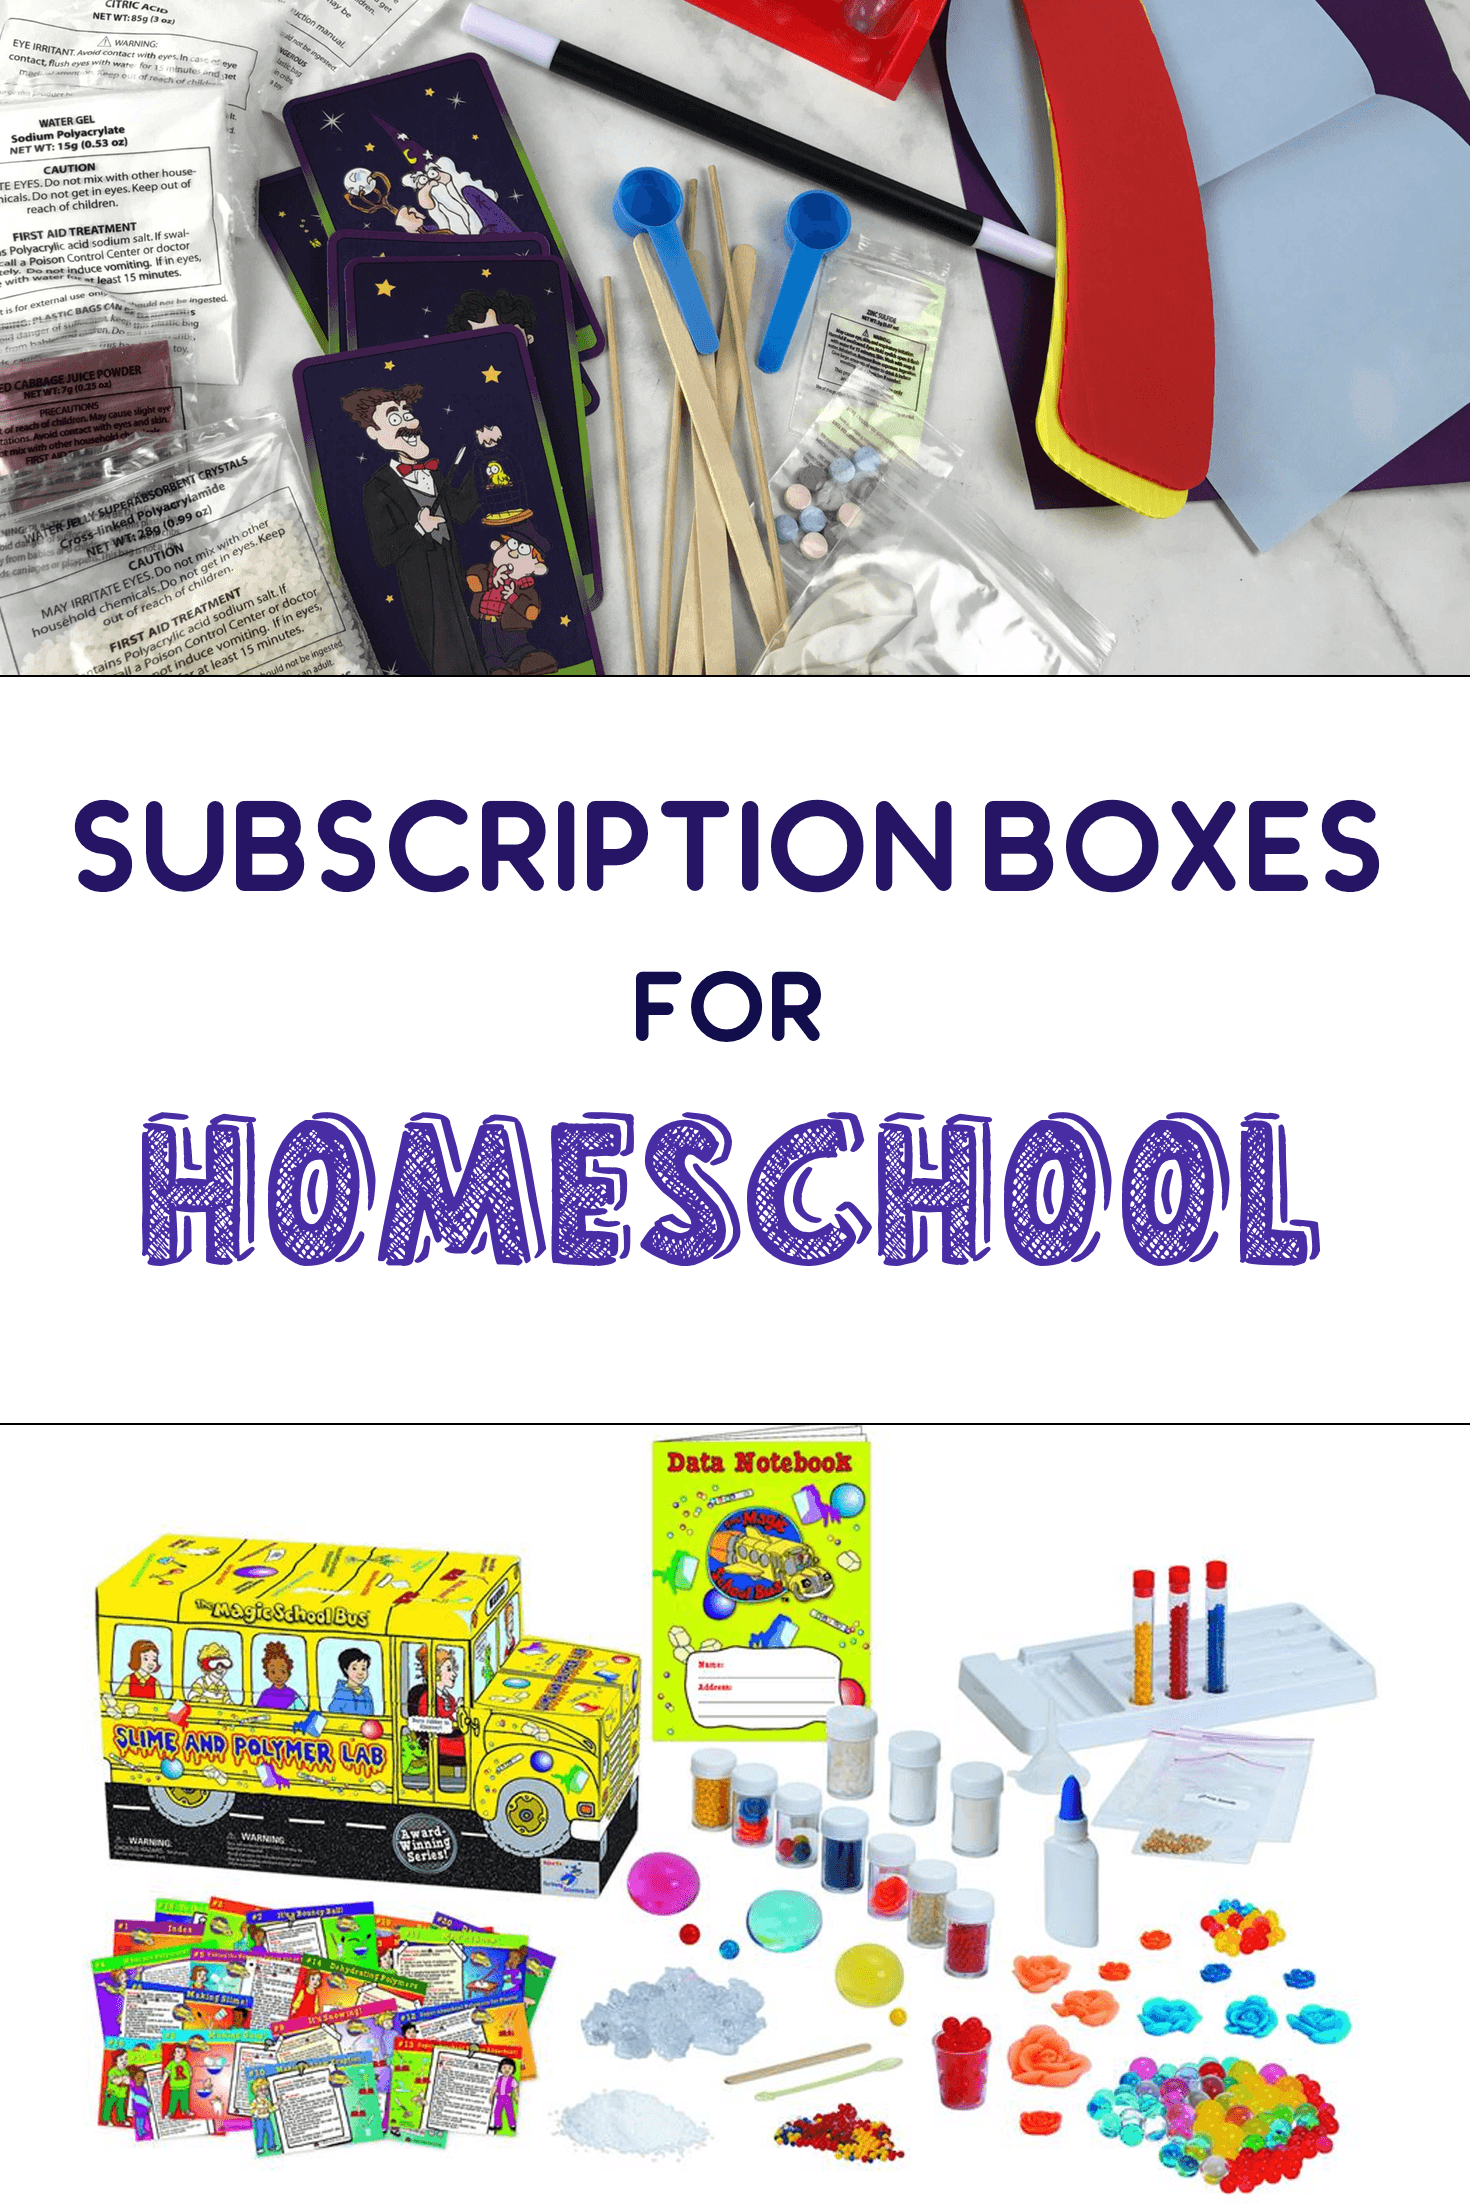 Best Subscription Boxes for Homeschoolers